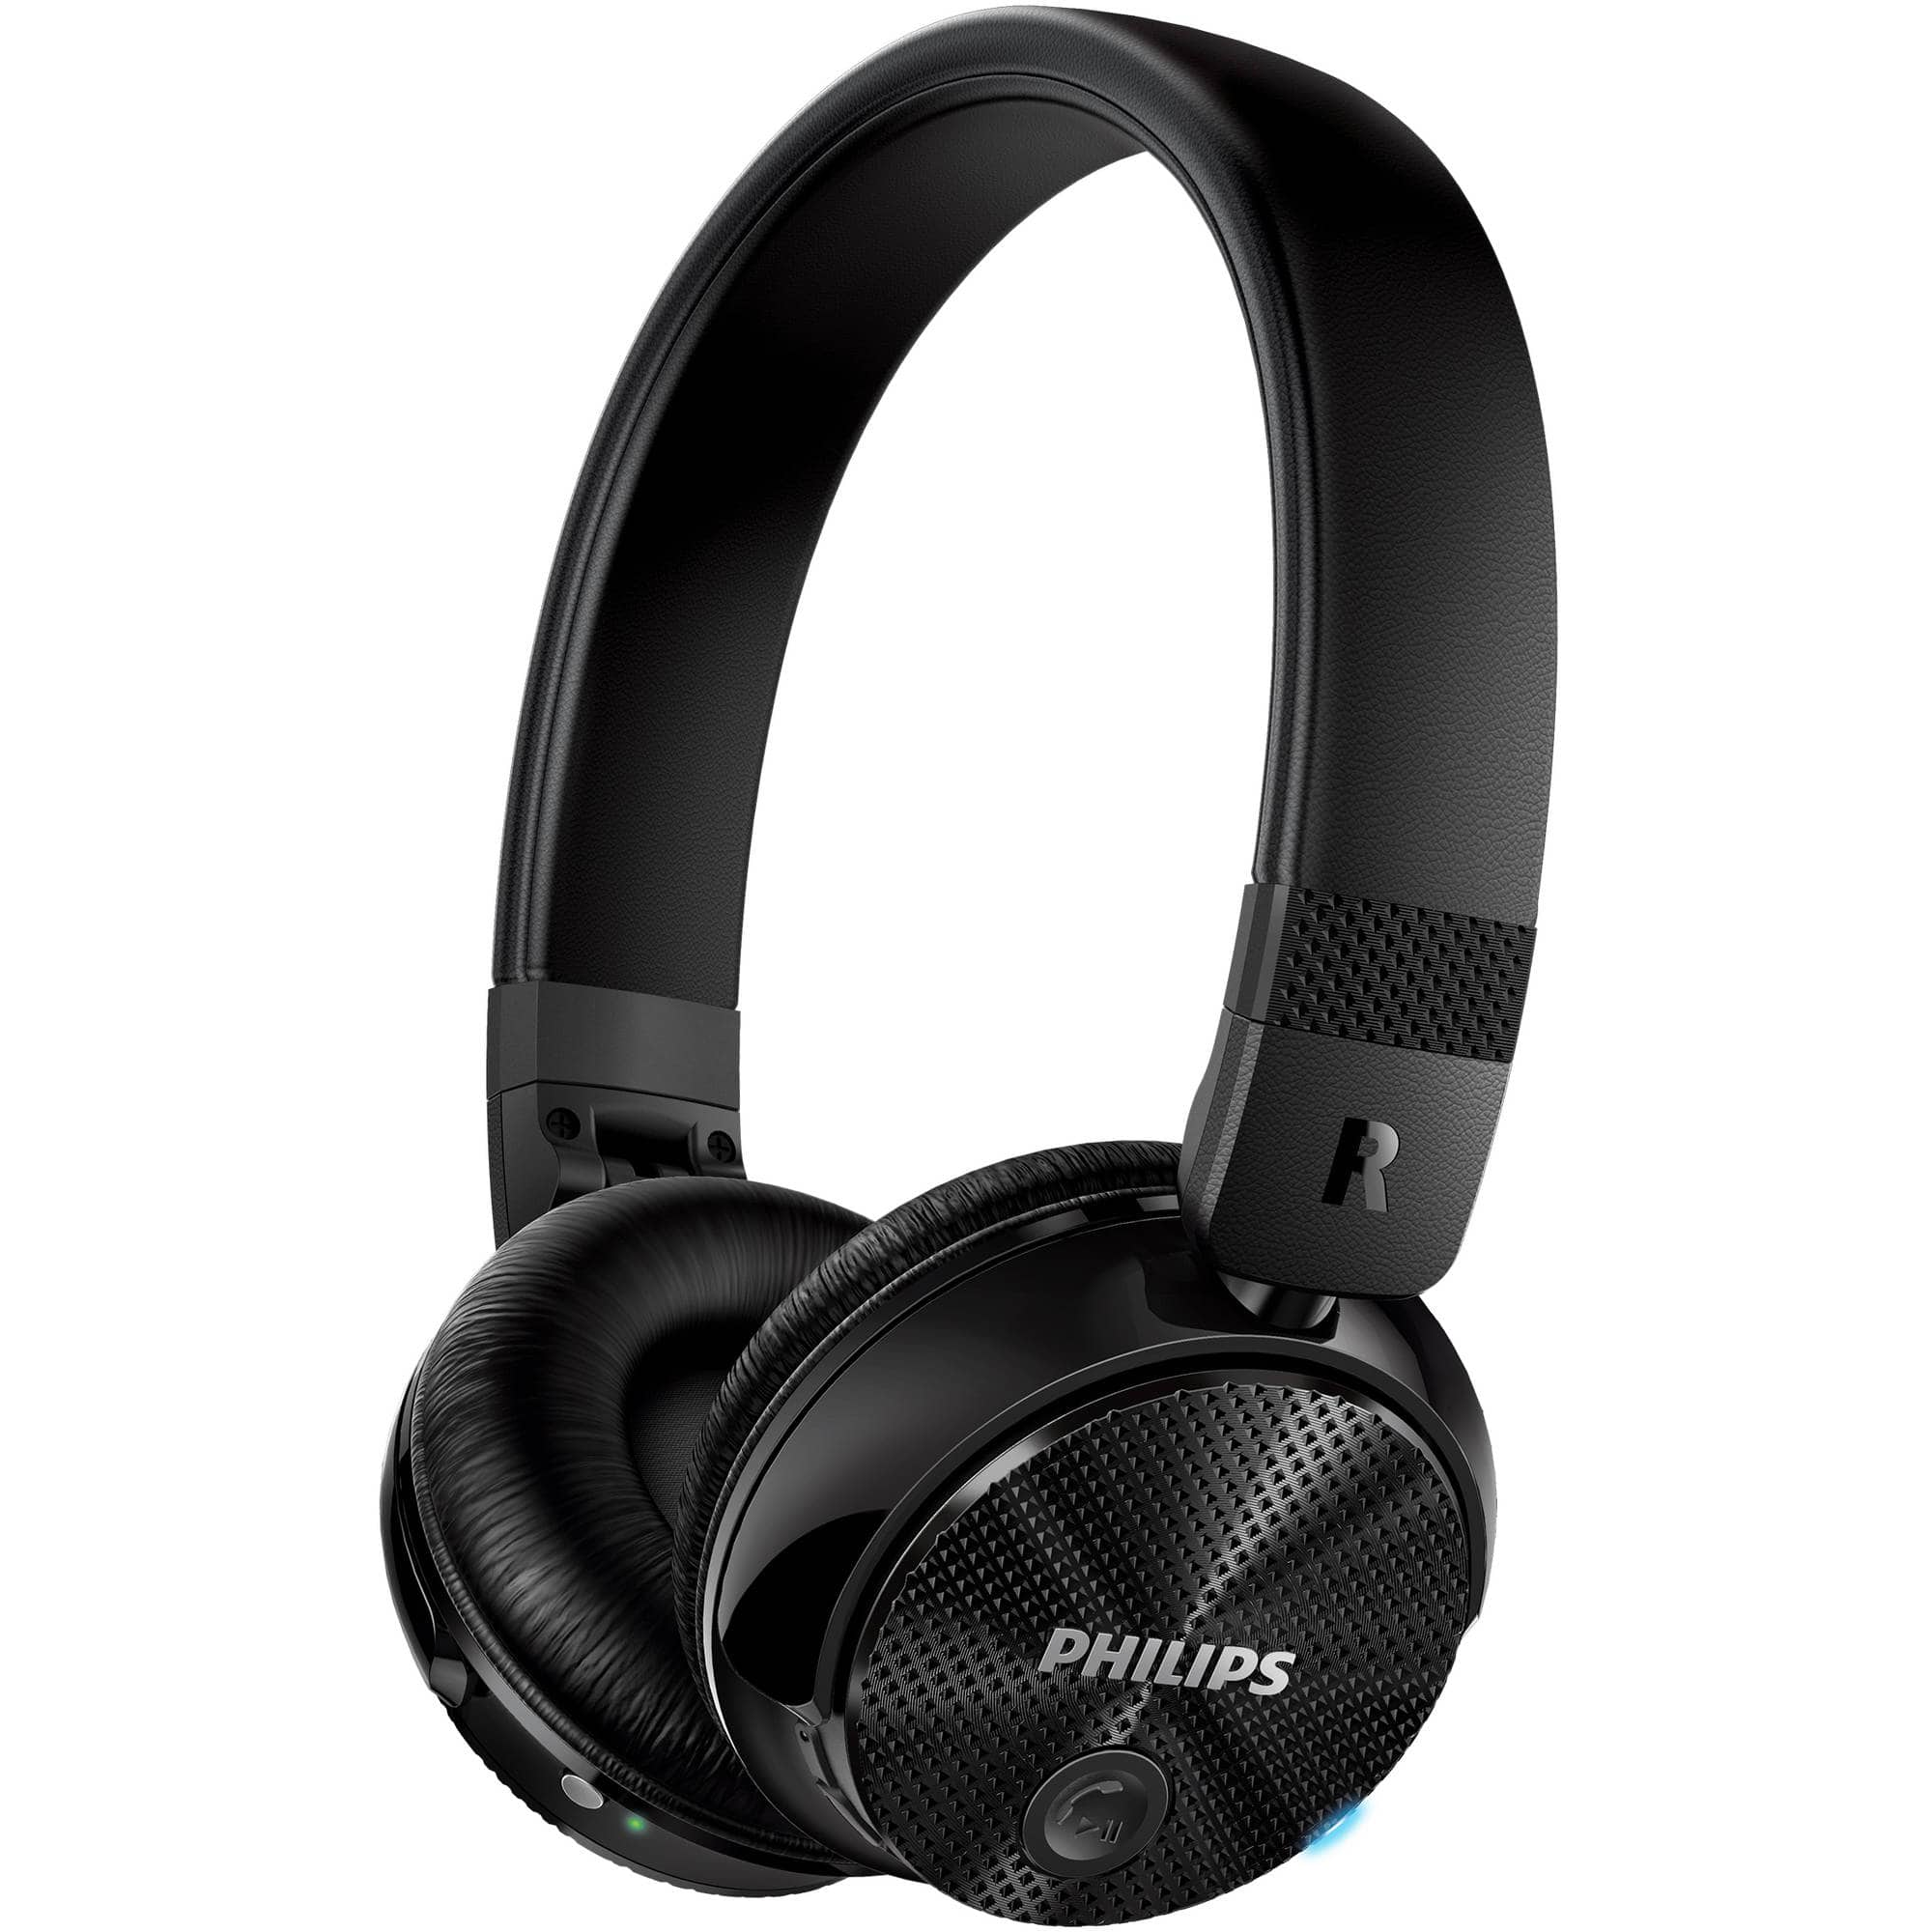 Bluetooth Wireless Headset Walmart: Philips Bluetooth Noise Cancelling Headphones Walmart $15 B&M YMMV